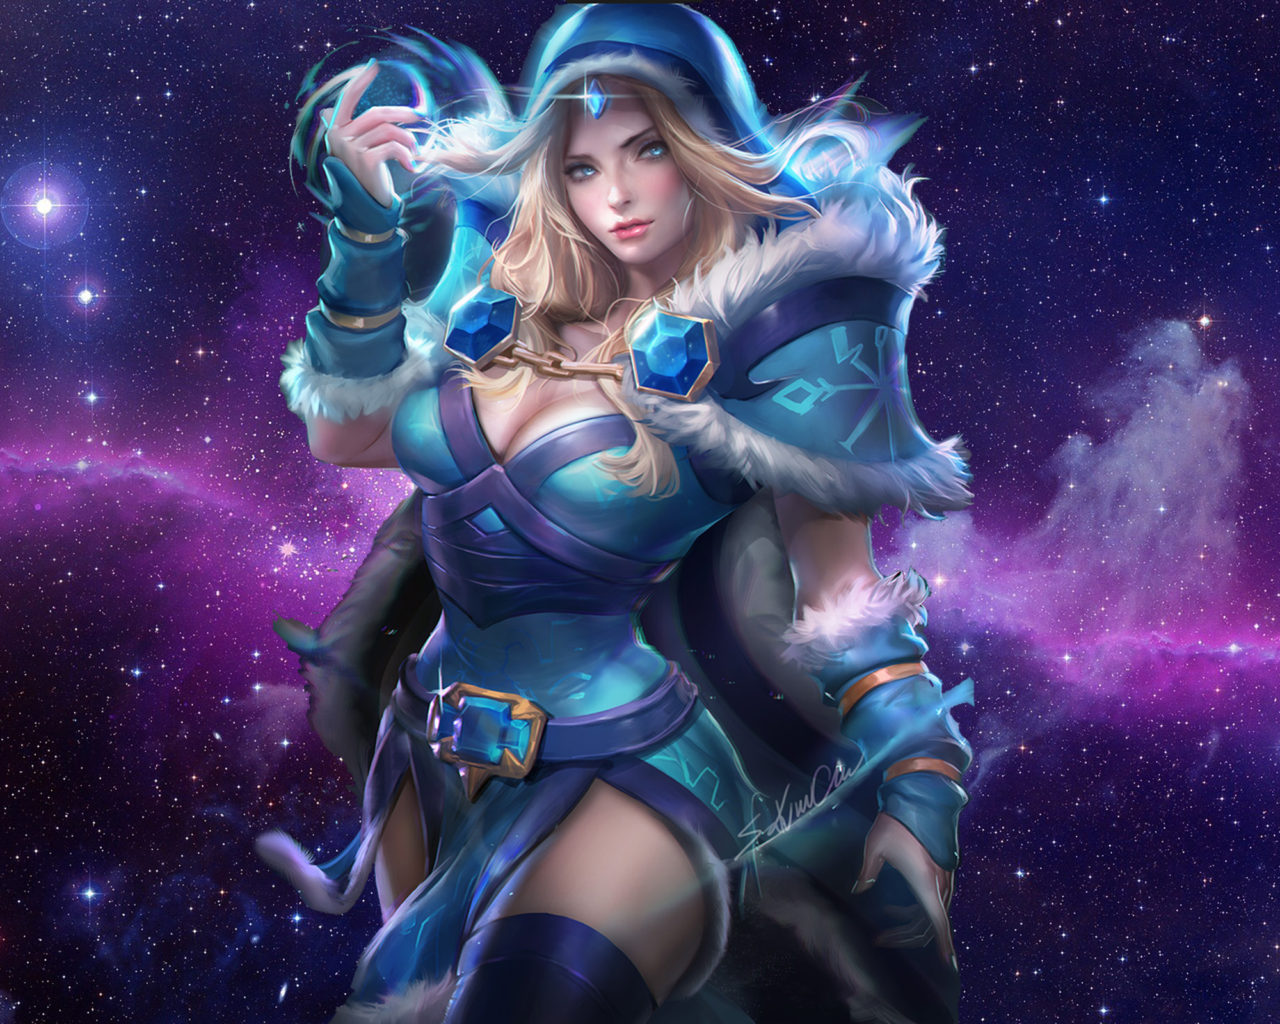 Beautiful Girl Wallpaper Hd 16 Sakimichan Rylai The Crystal Maiden Dota 2 Art Picture Of